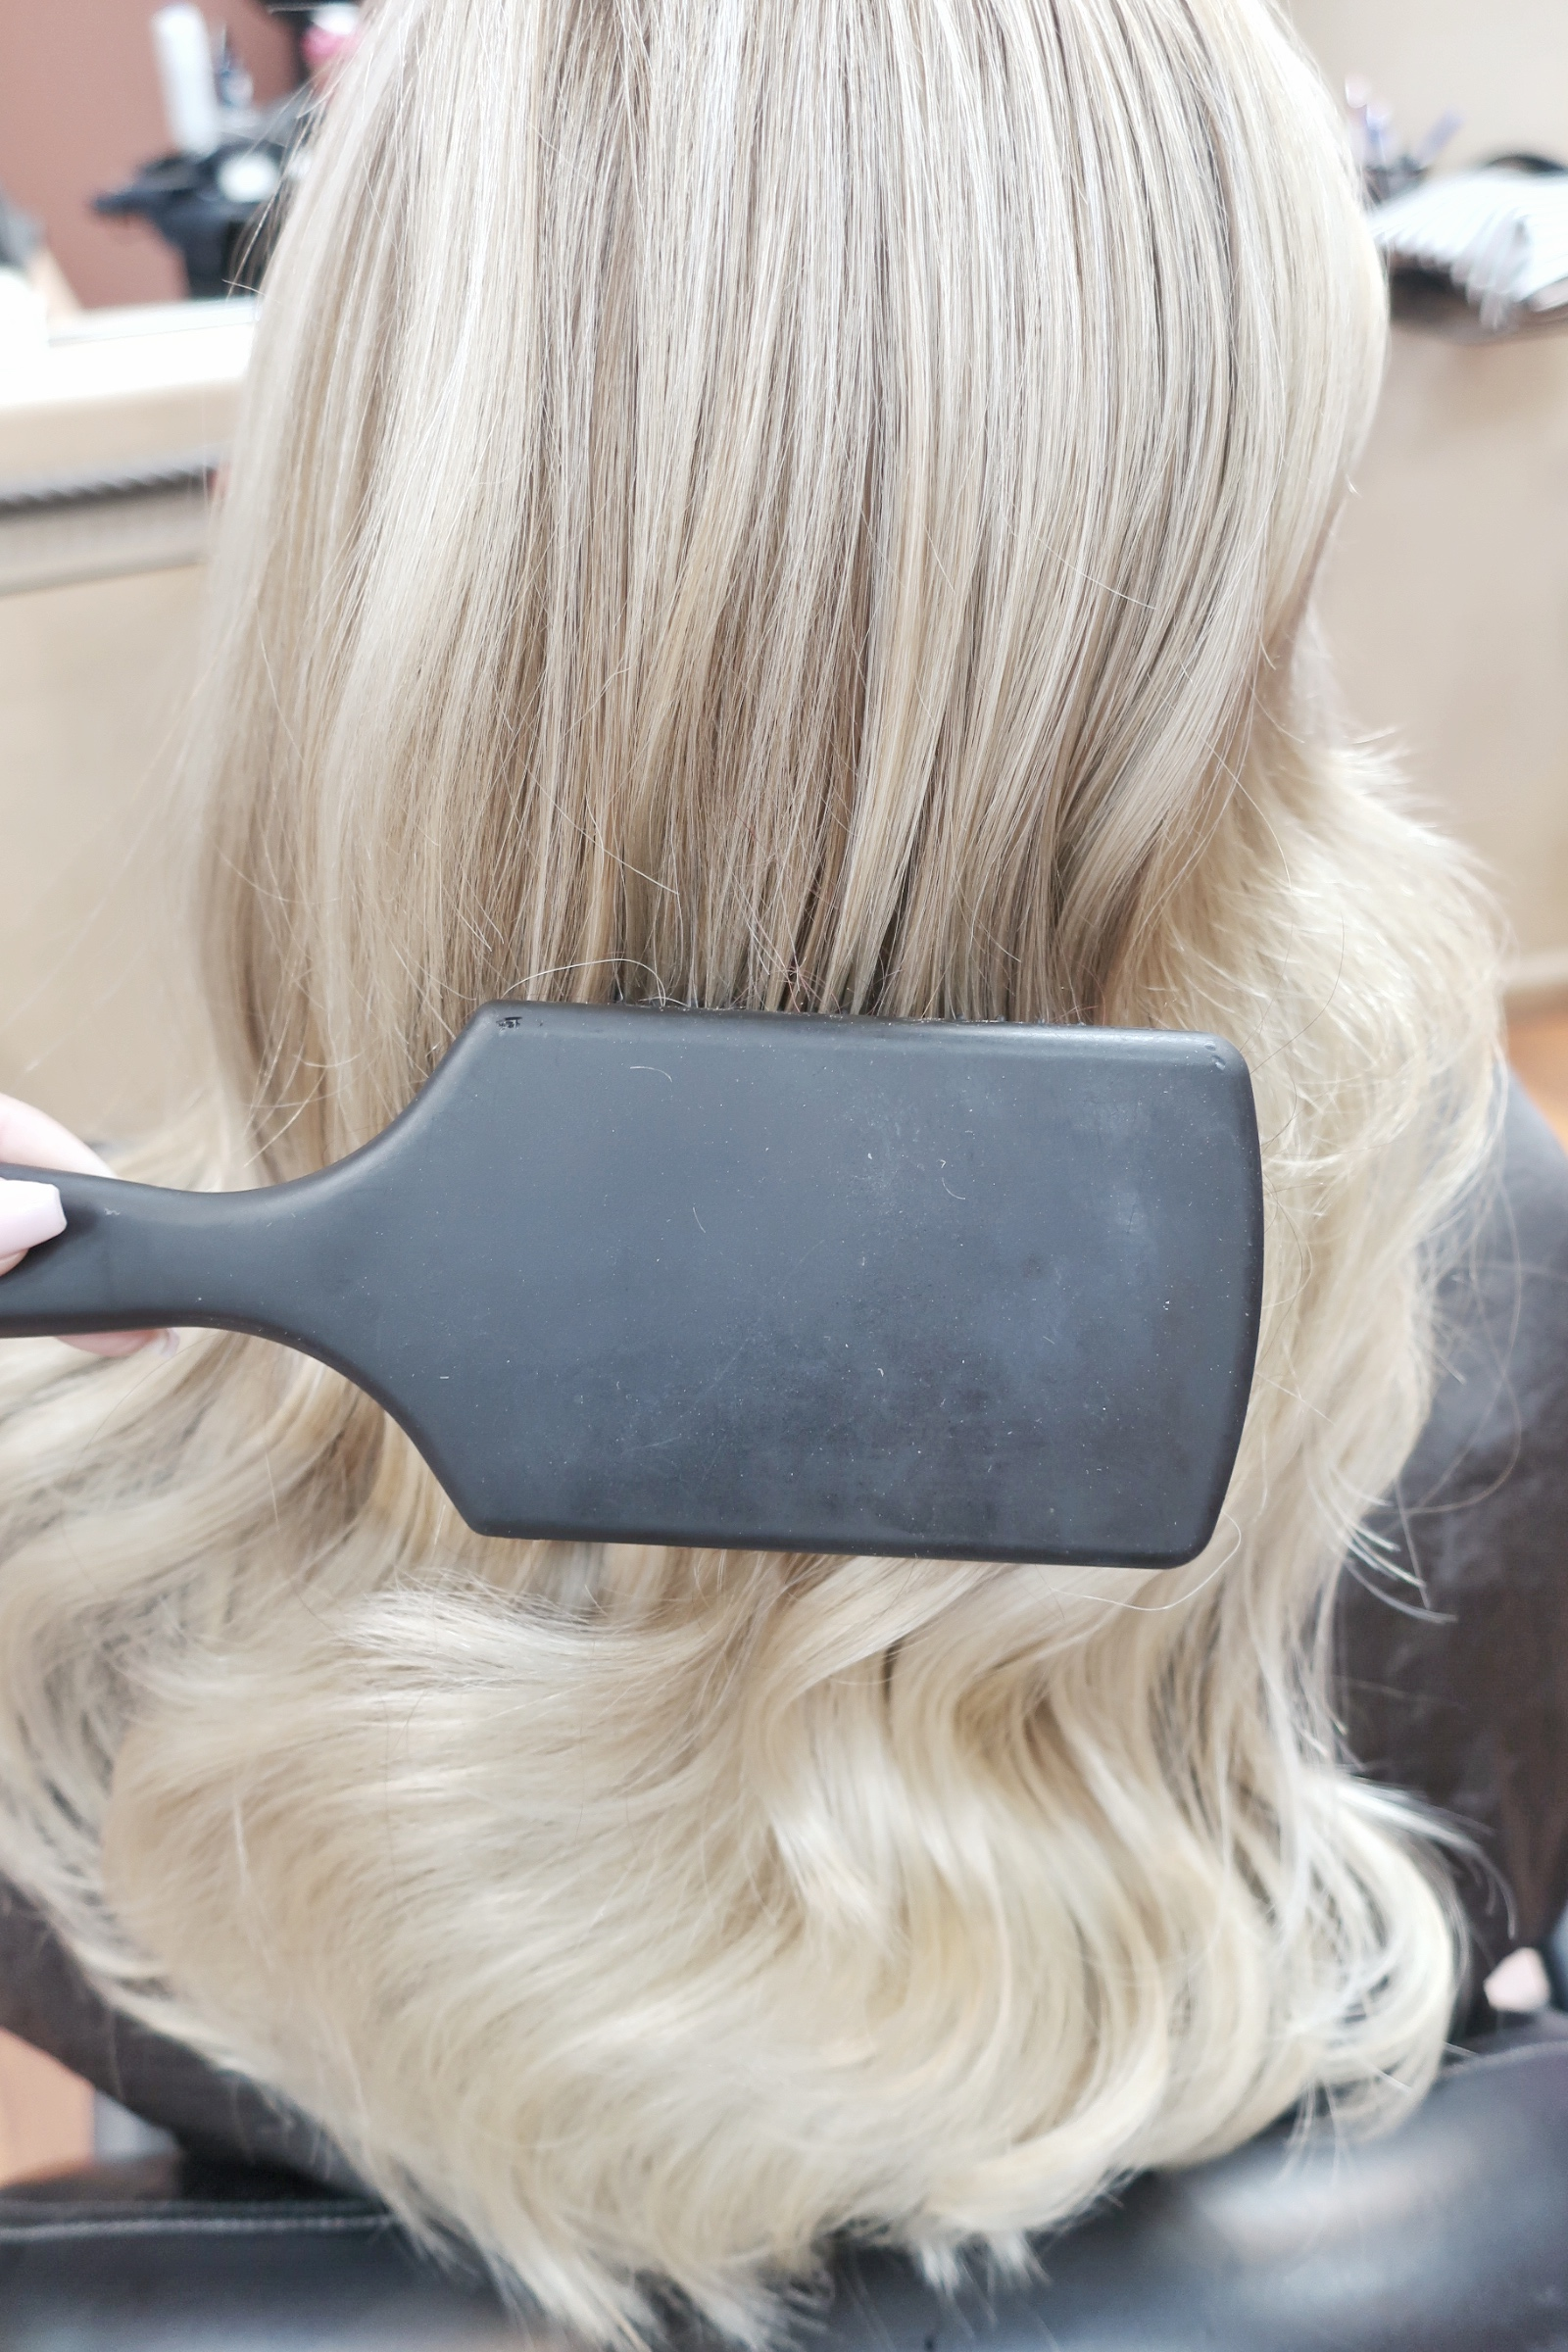 Next spray brush with hairspray and brush curls down and gently. (as shown in photo)